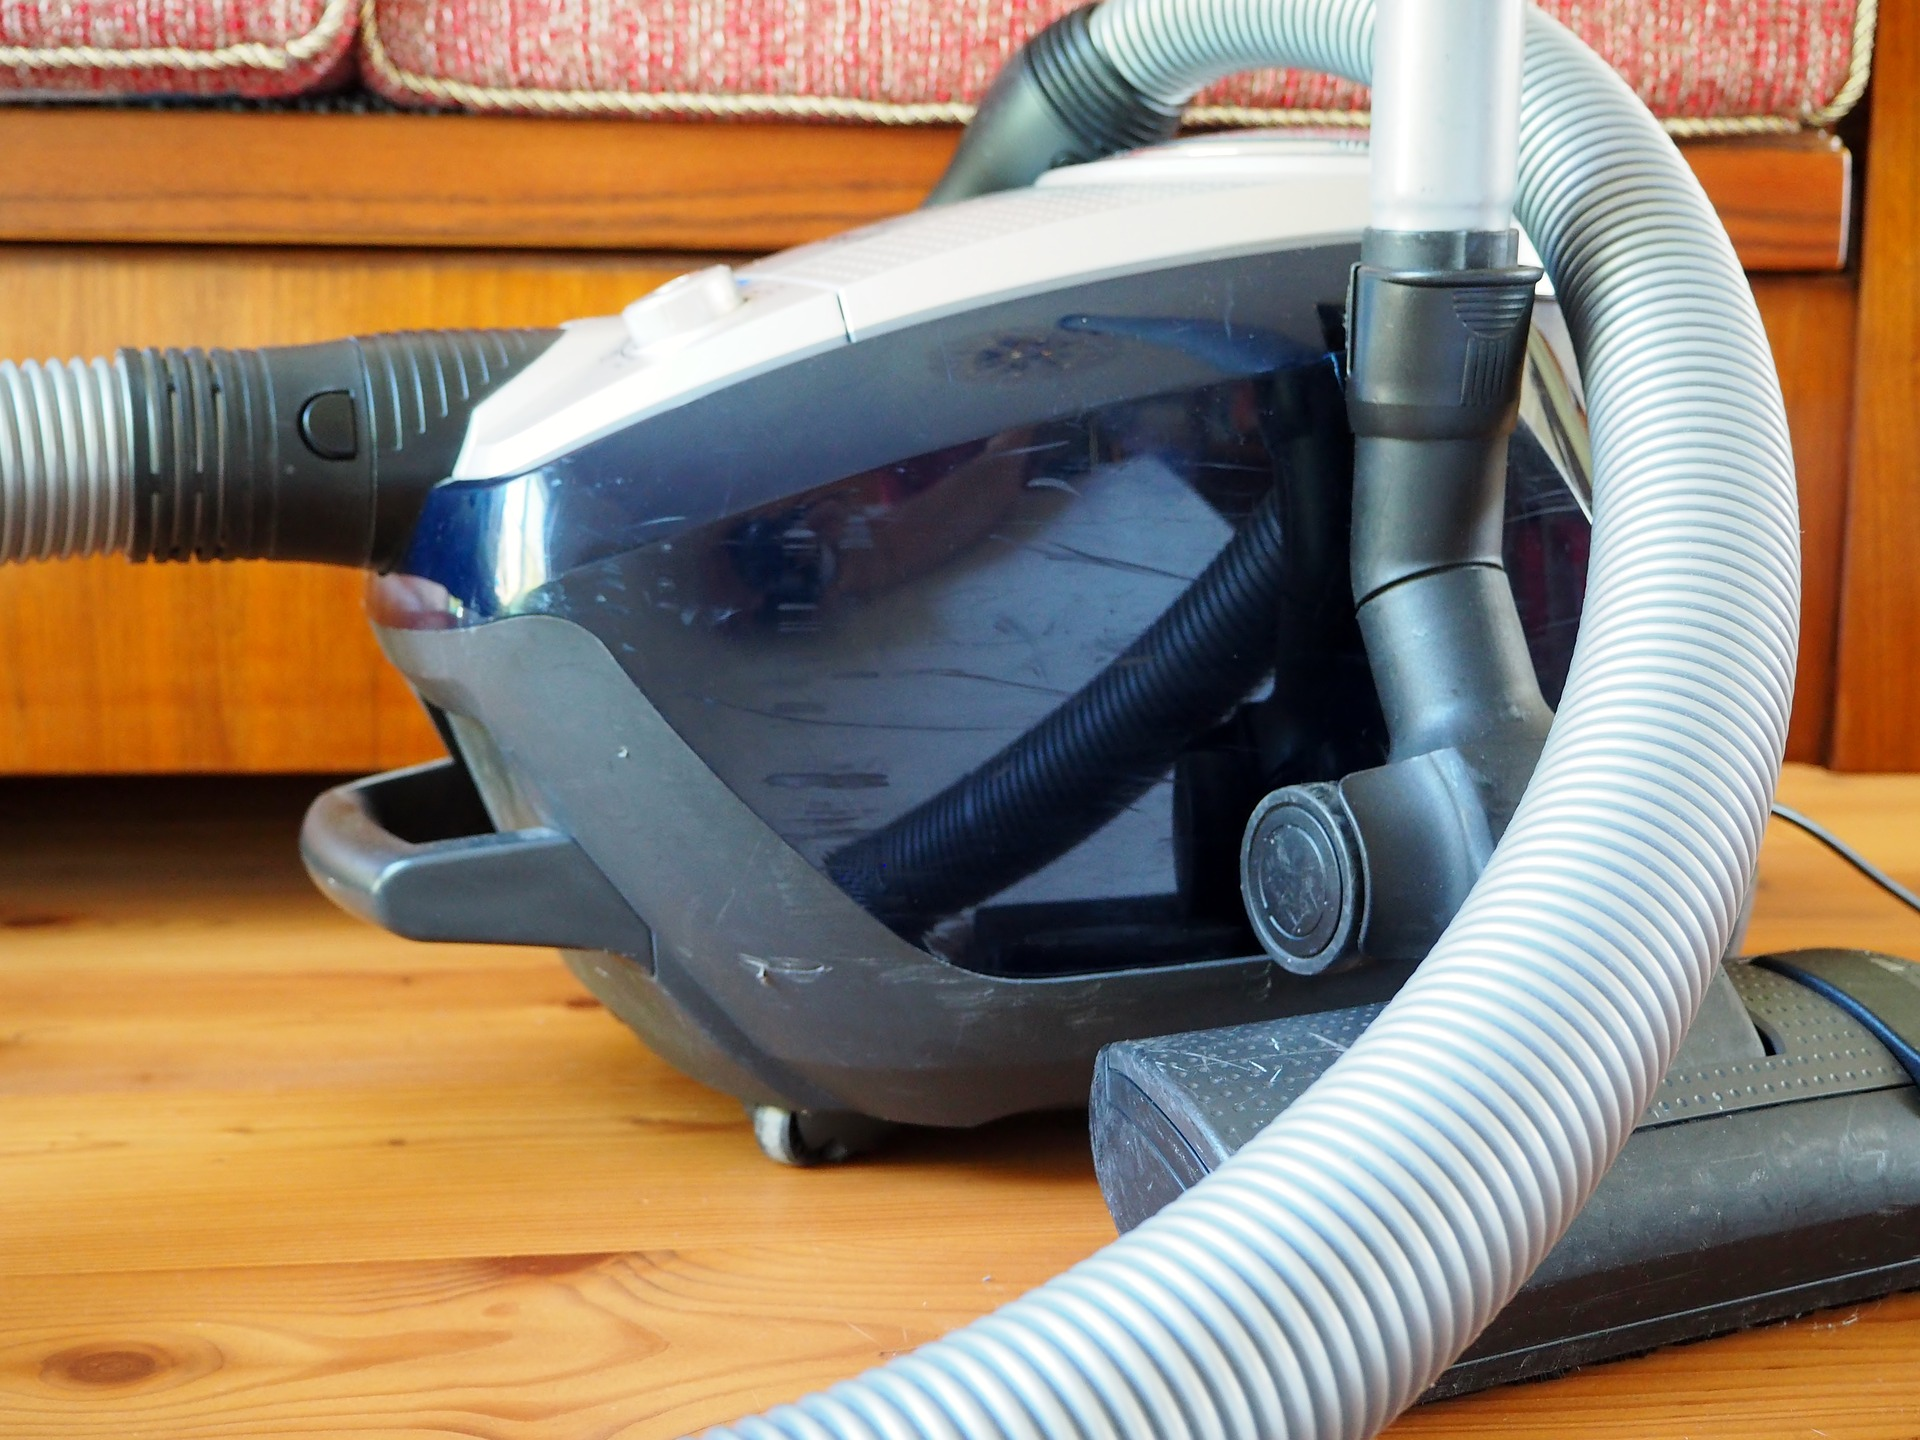 6 Best Vacuum For Laminate Floors - Complete Guide and Reviews